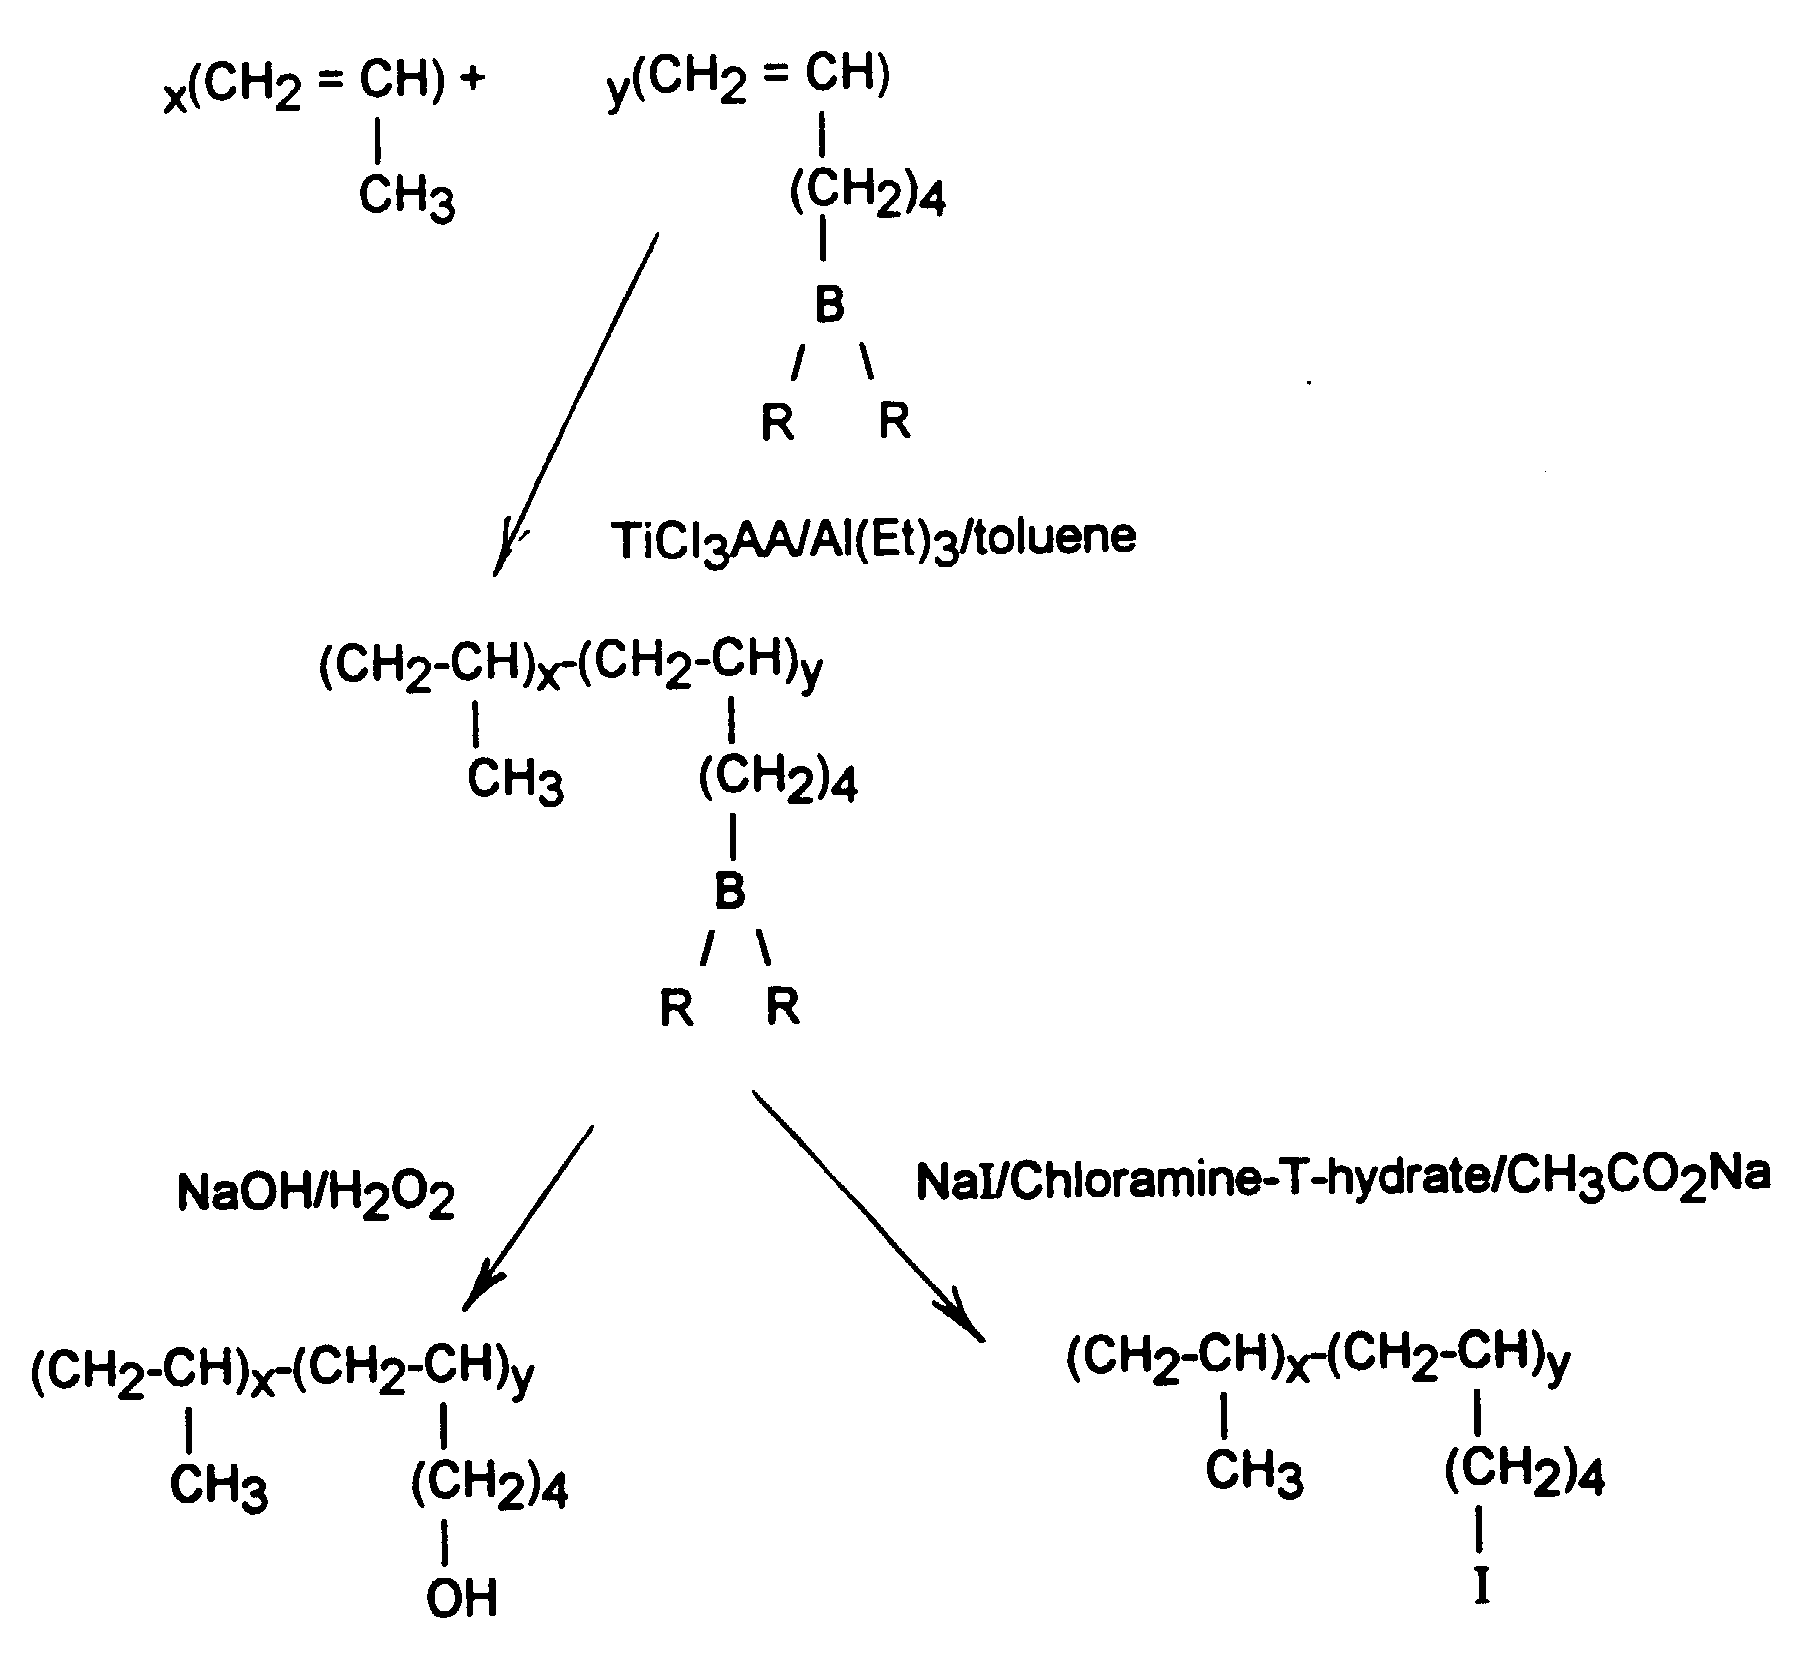 EP0700405B1 - Lewis acid catalysts supported on porous